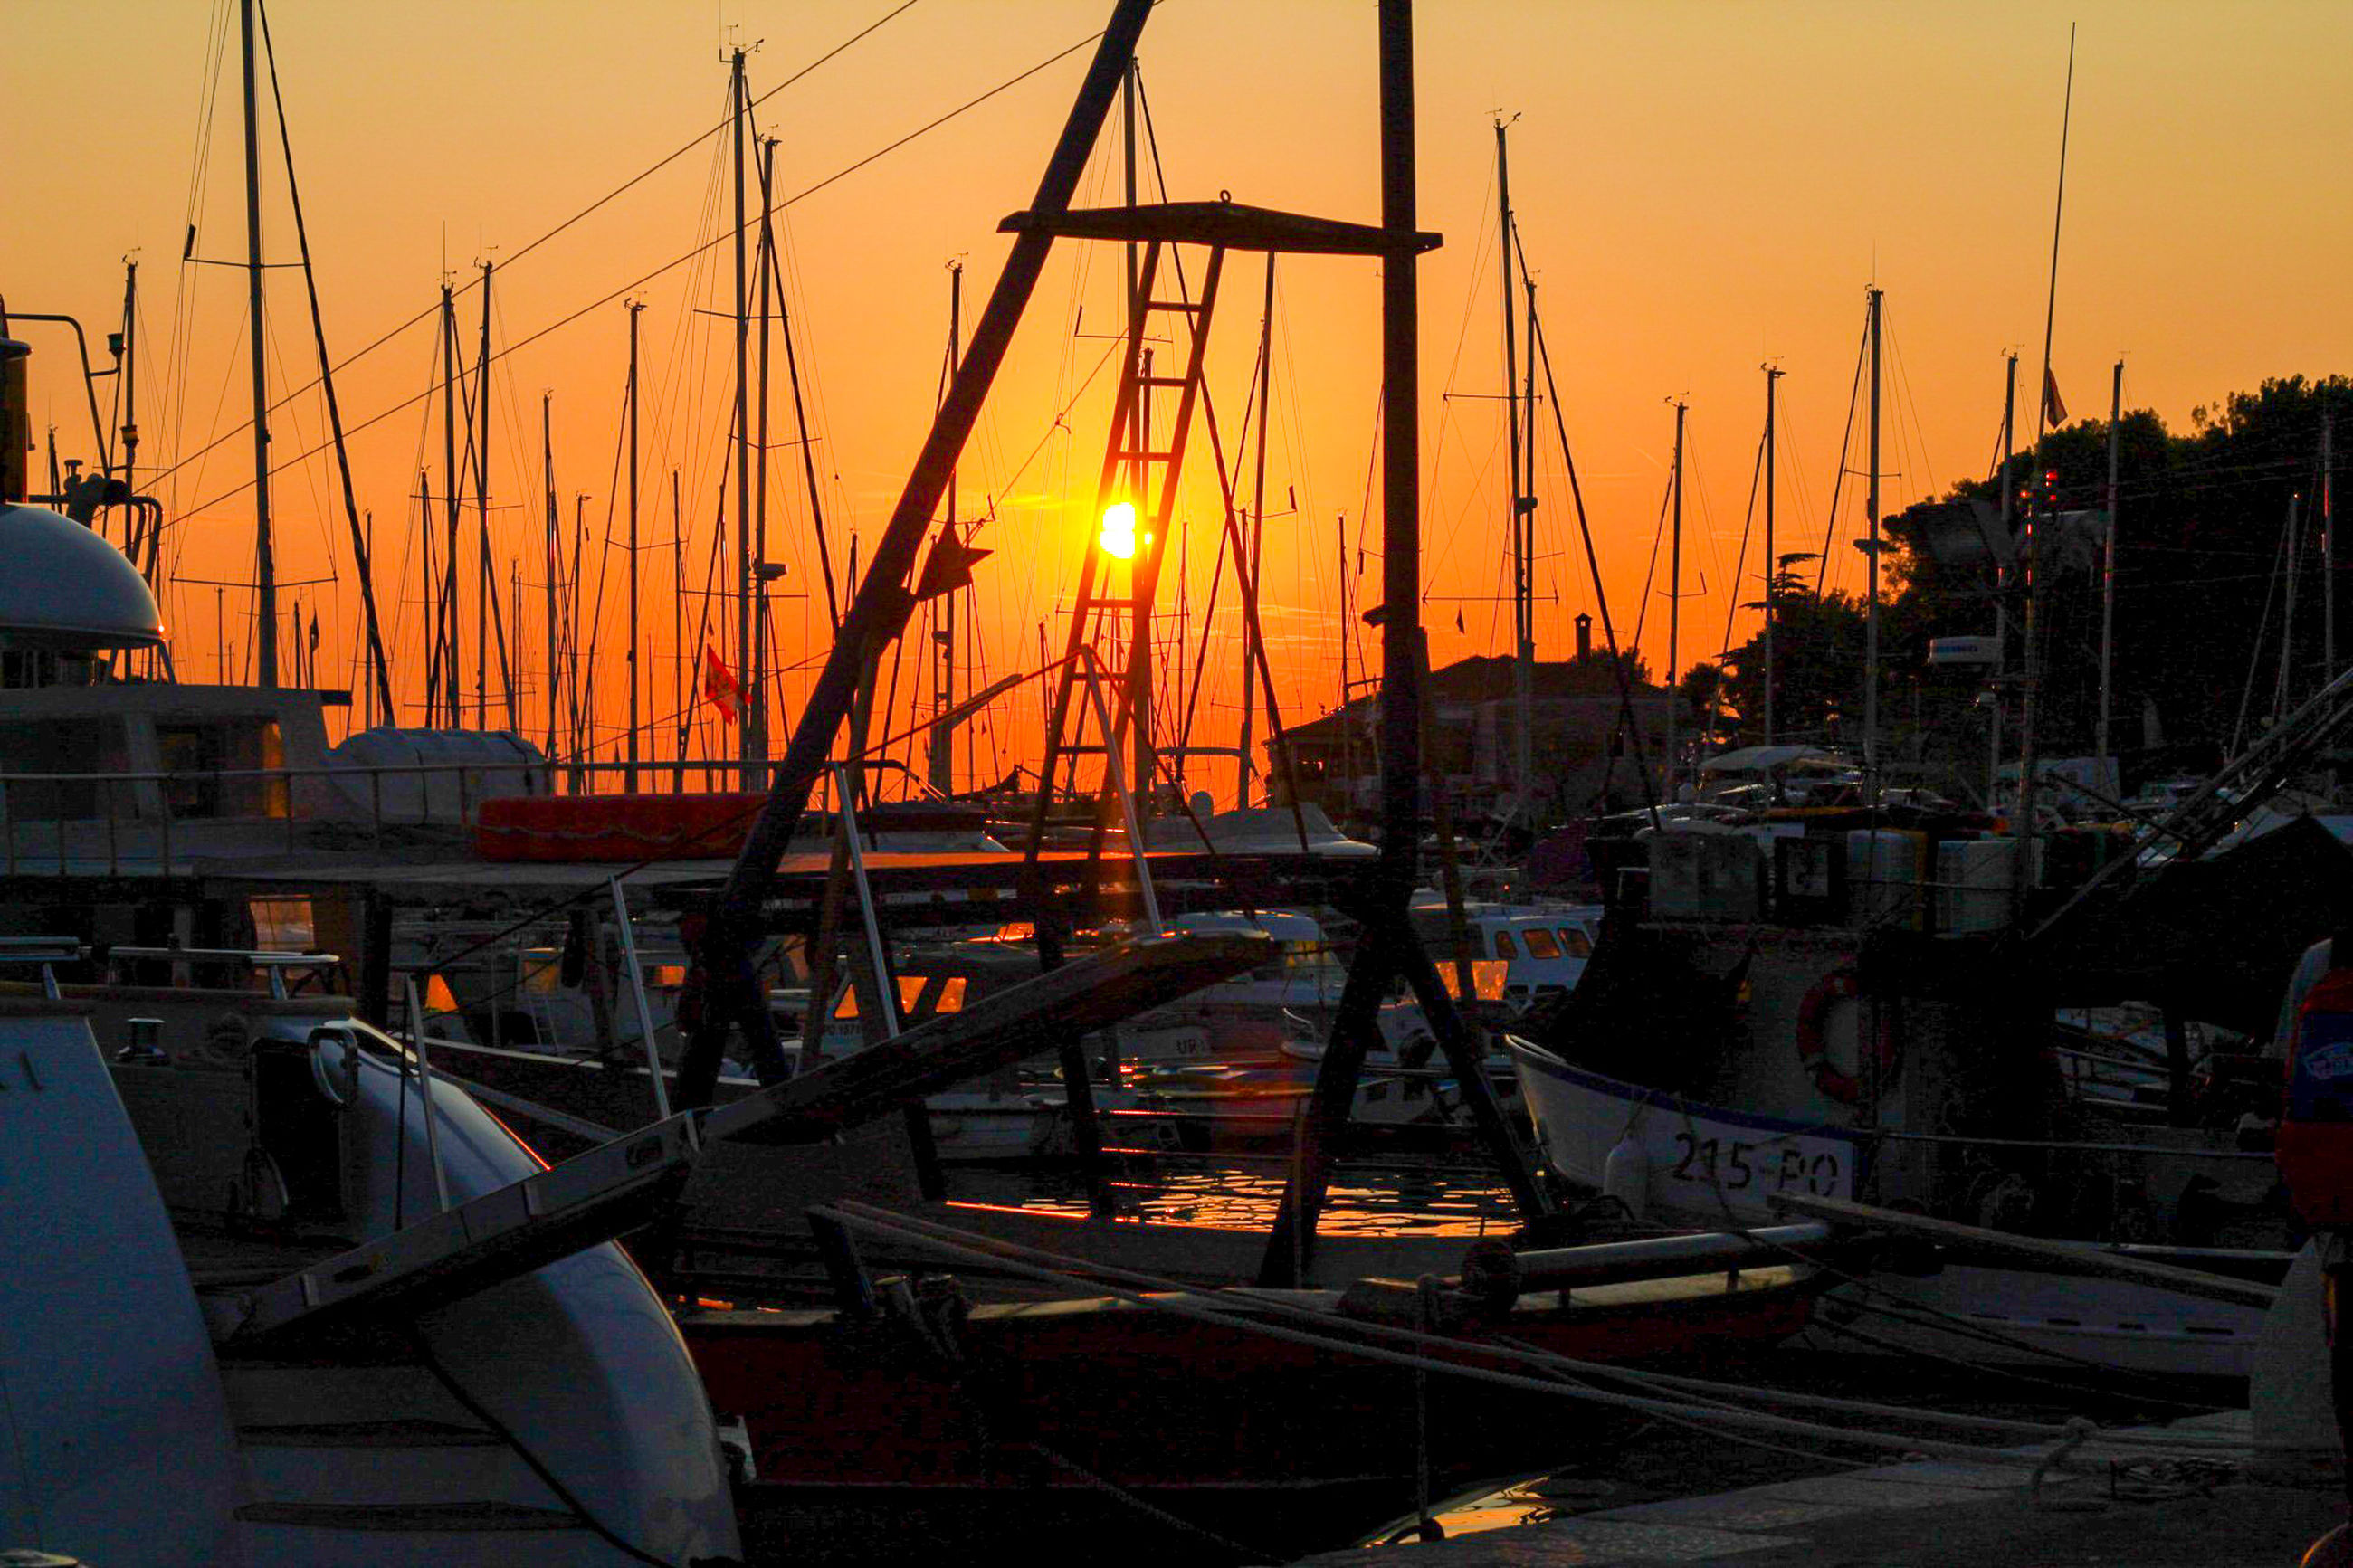 sunset, sky, nautical vessel, mode of transportation, transportation, water, orange color, pole, harbor, sailboat, nature, no people, mast, moored, architecture, sea, outdoors, sun, beauty in nature, bright, marina, yacht, rigging, port